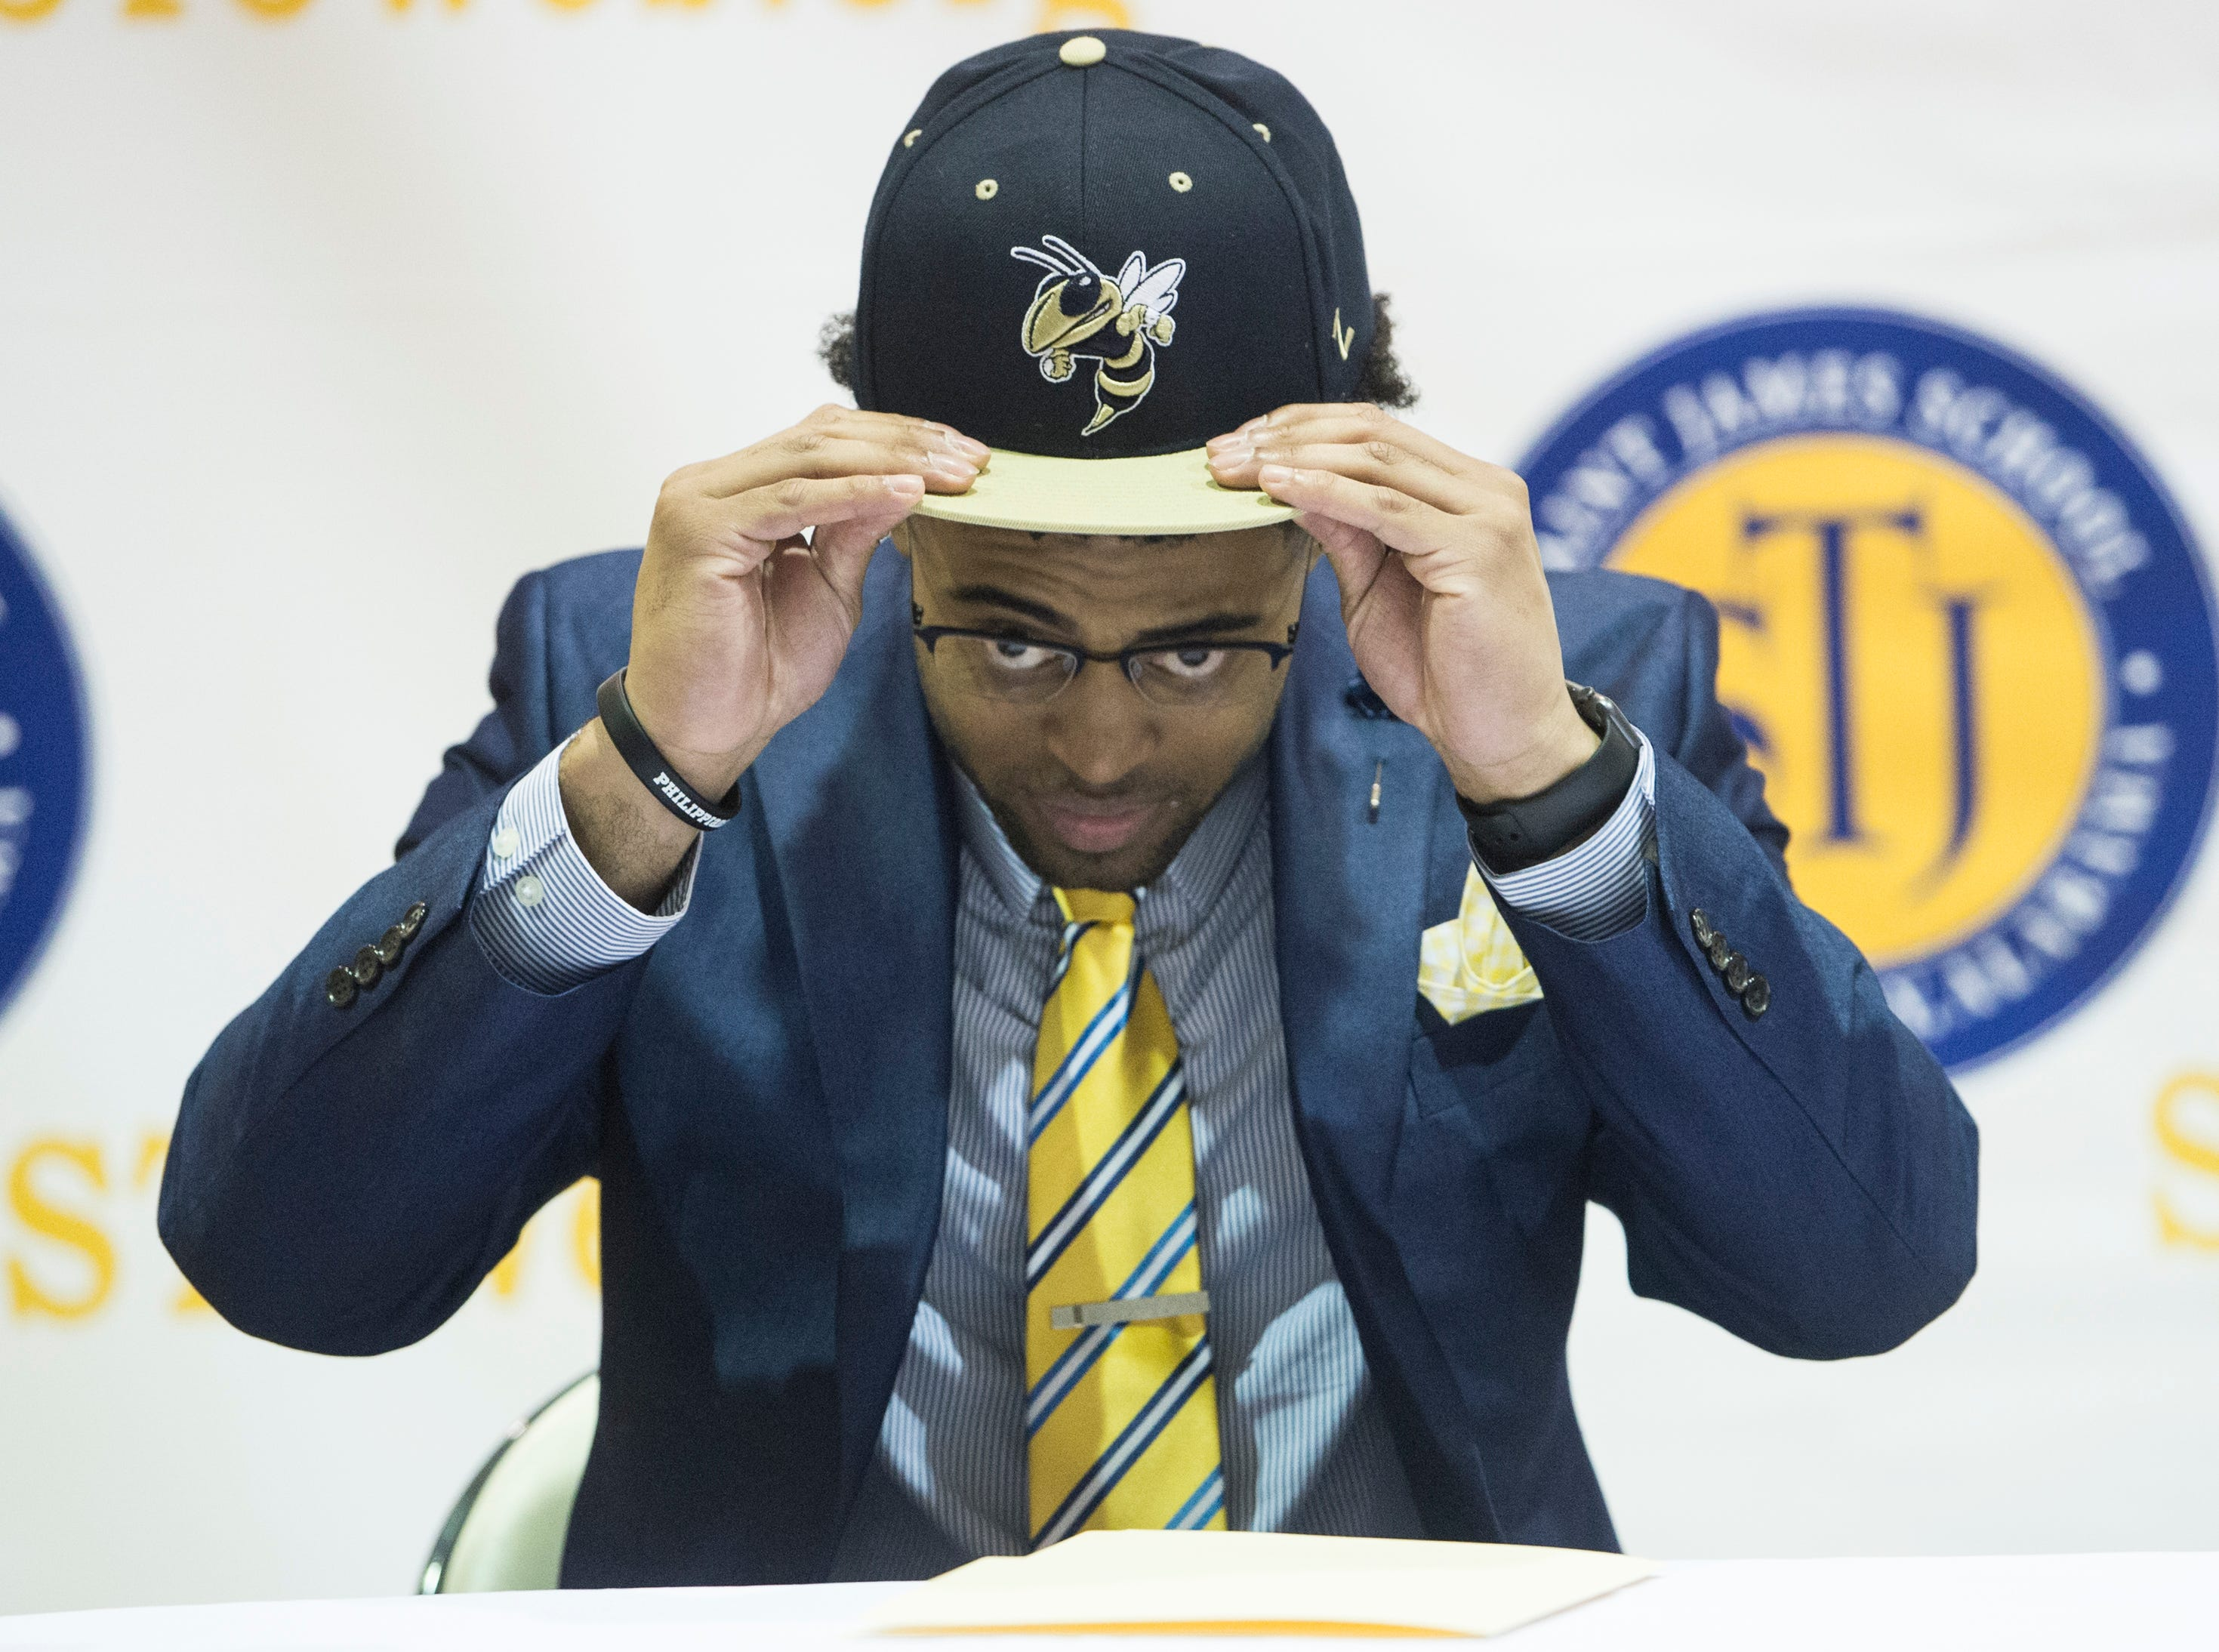 Tony Amerson announces his signing to Georgia State during signing day at St. James High School in Montgomery, Ala., on Wednesday, Feb. 6, 2019.